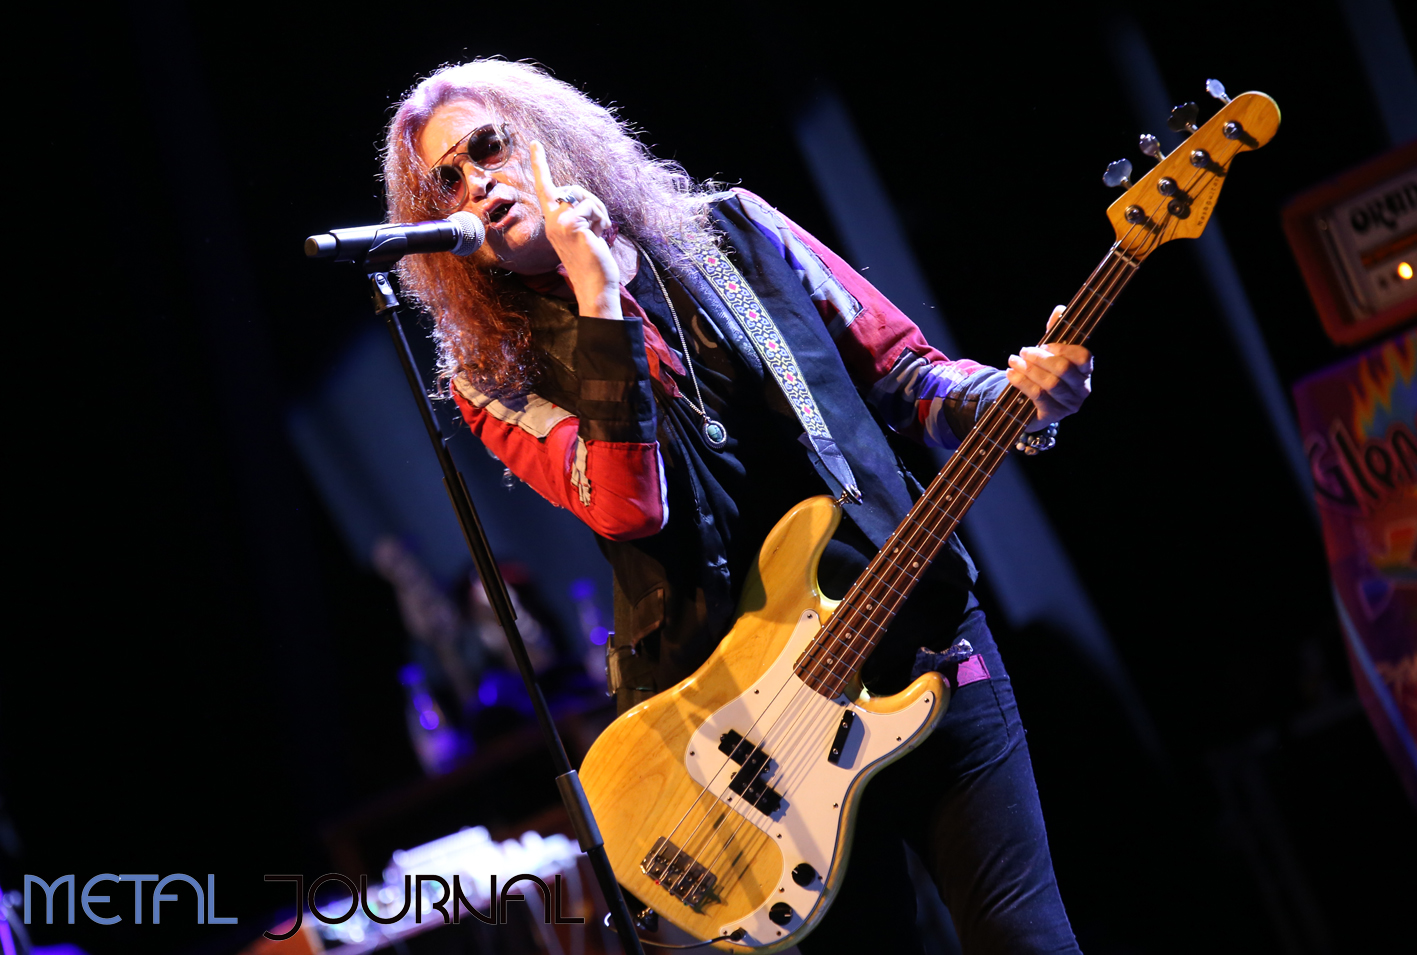 glenn hughes - metal journal pic 1